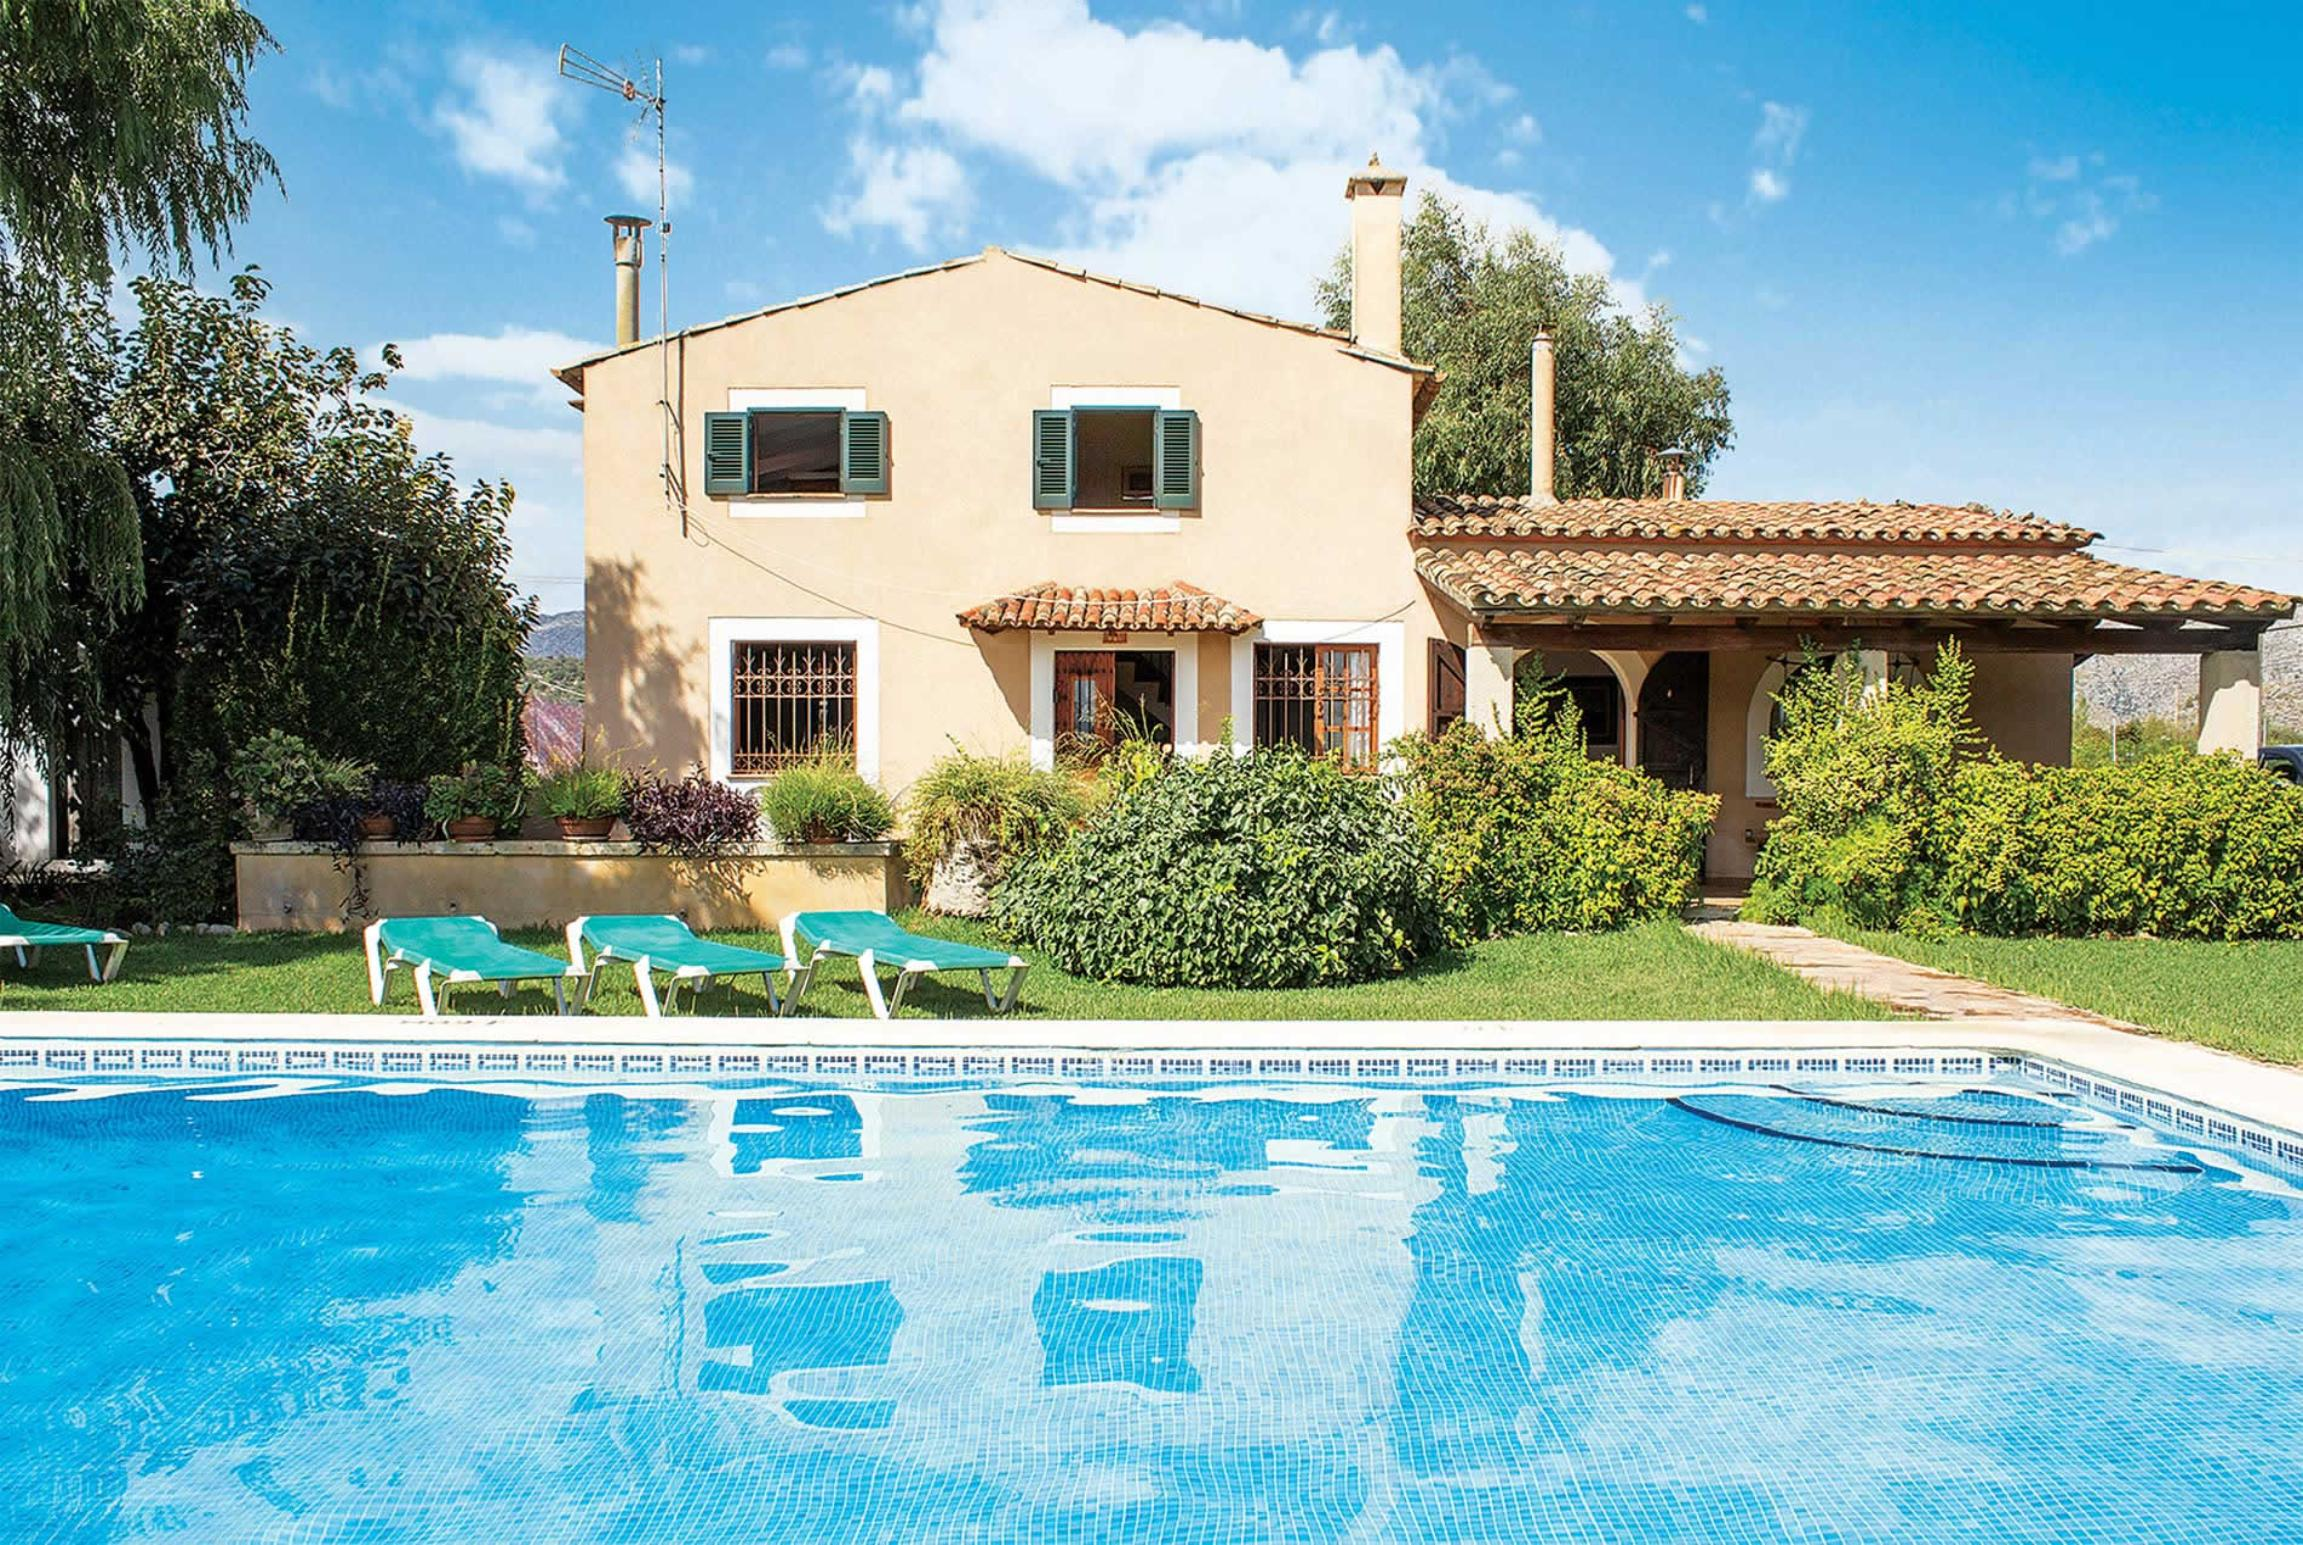 Read more about Can Borras villa